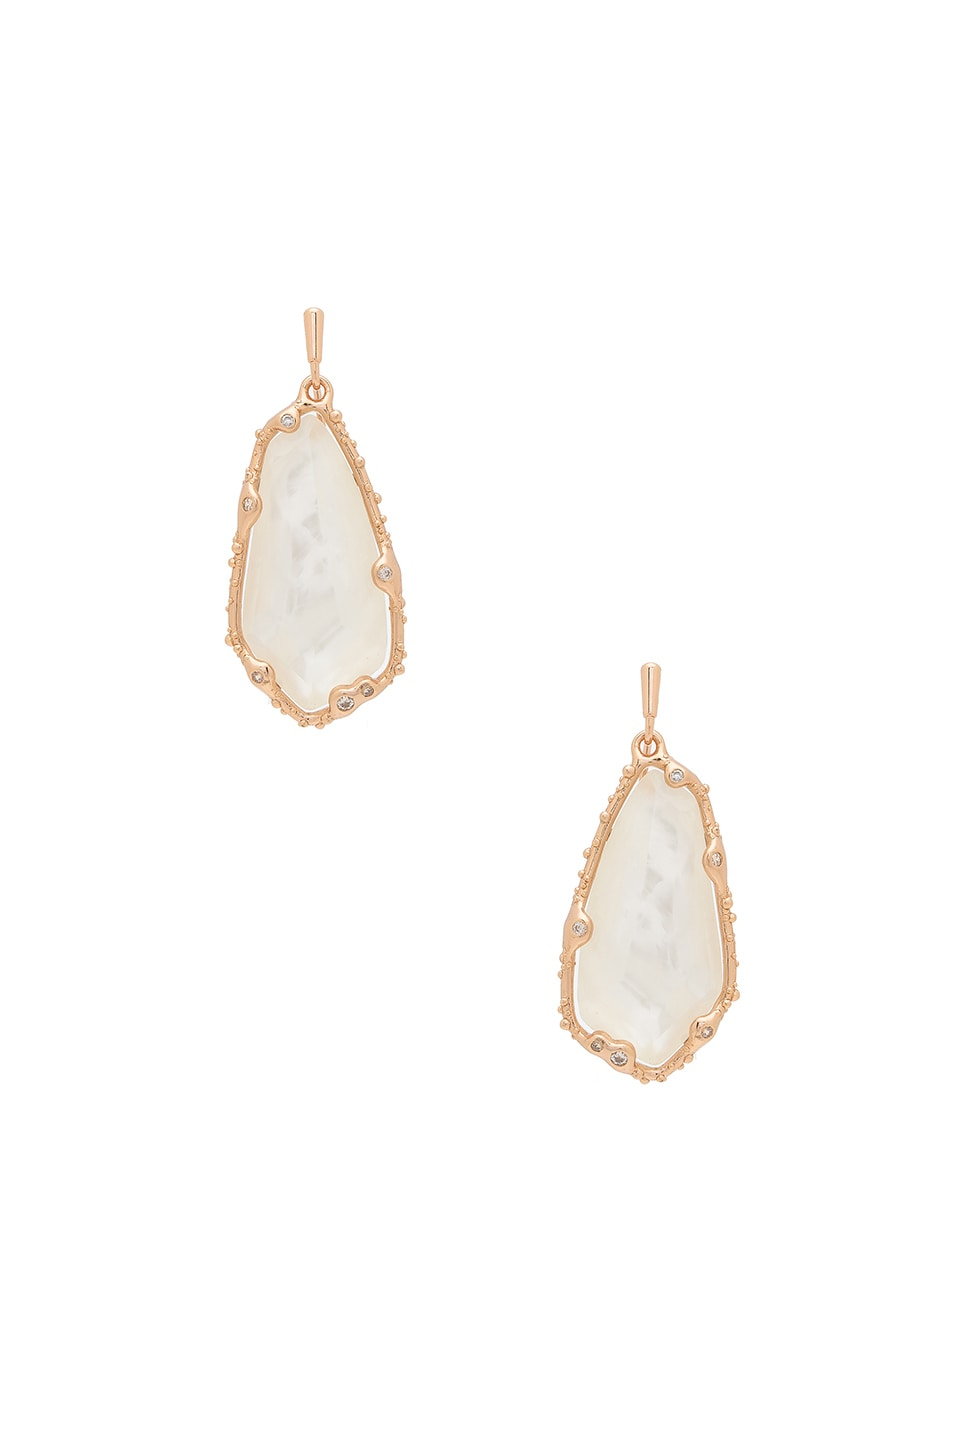 Zena Earrings by Kendra Scott